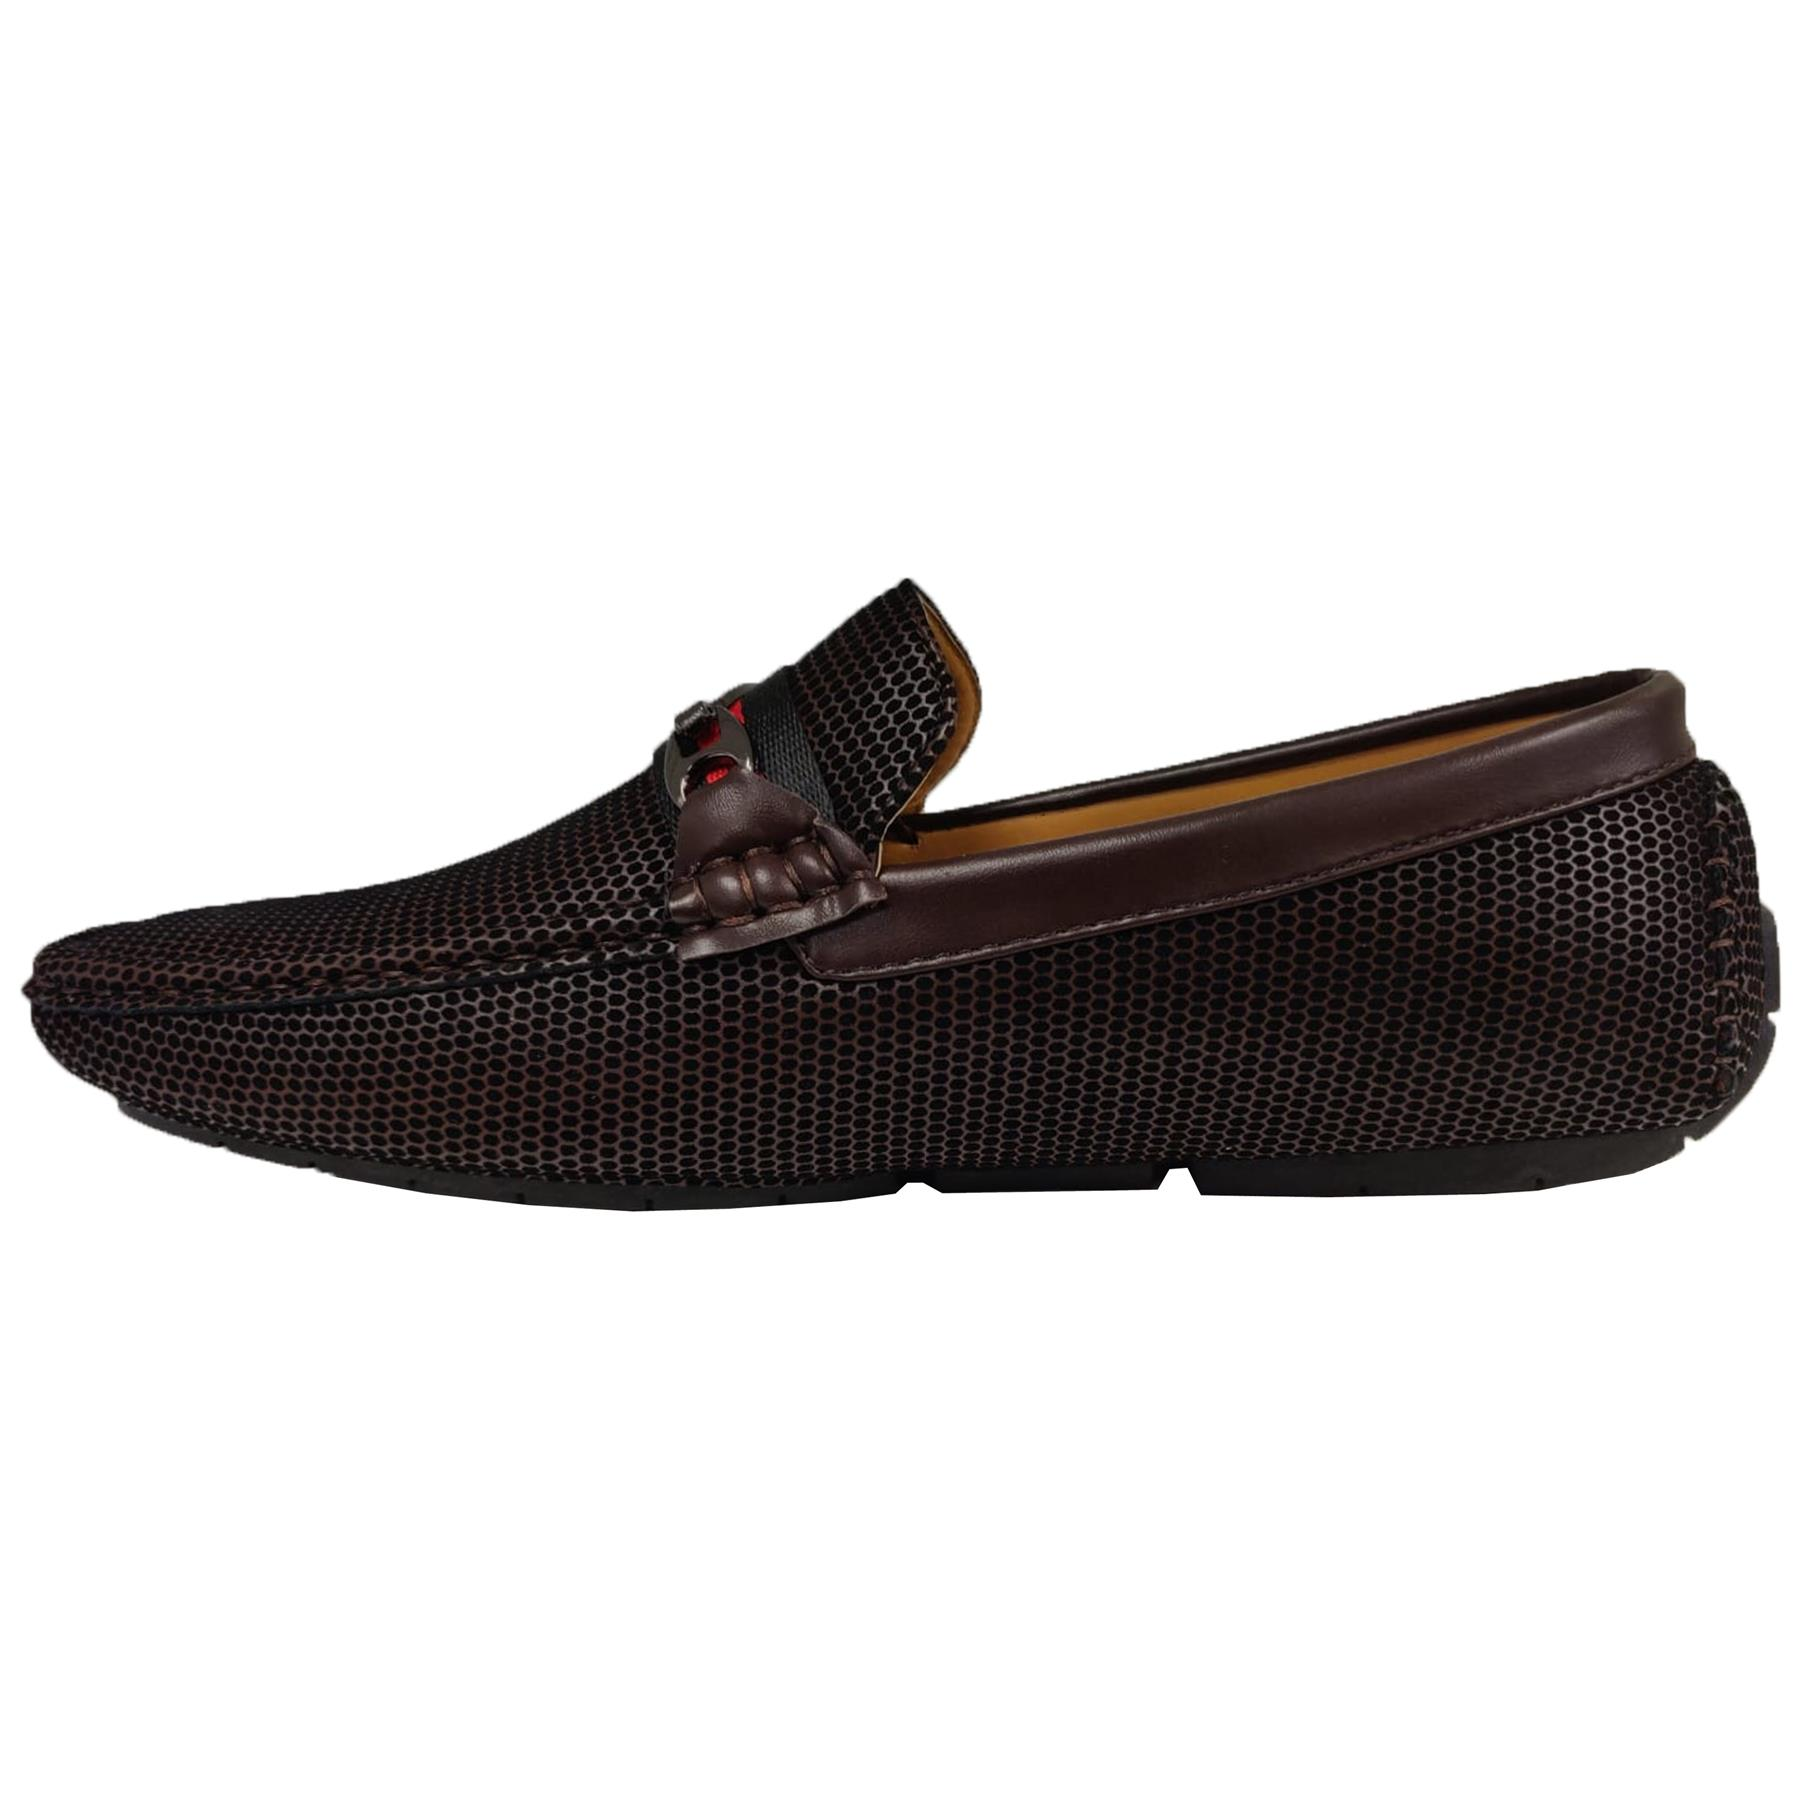 Mens-Slip-Ons-Shoes-Boat-Deck-Driving-Smart-Buckle-Moccasins-Suede-Look-Loafers thumbnail 56